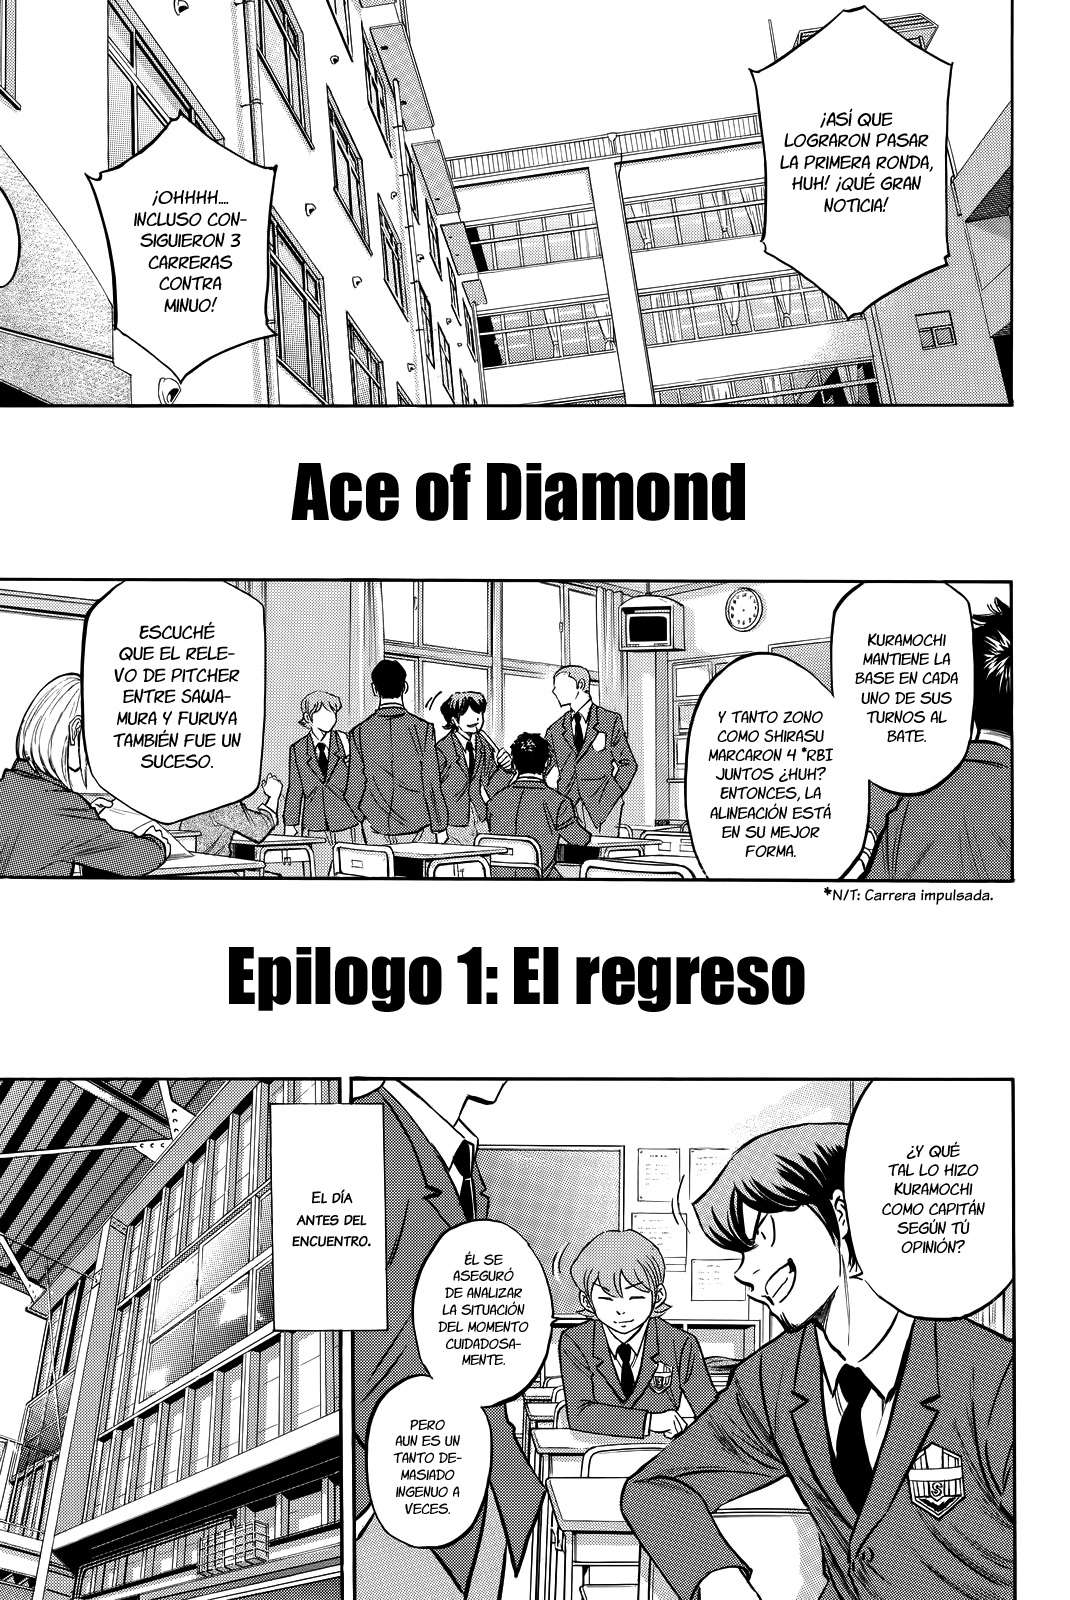 http://c5.ninemanga.com/es_manga/24/1752/430810/6c4ce2d66be954338a51e72eb79aae10.jpg Page 1